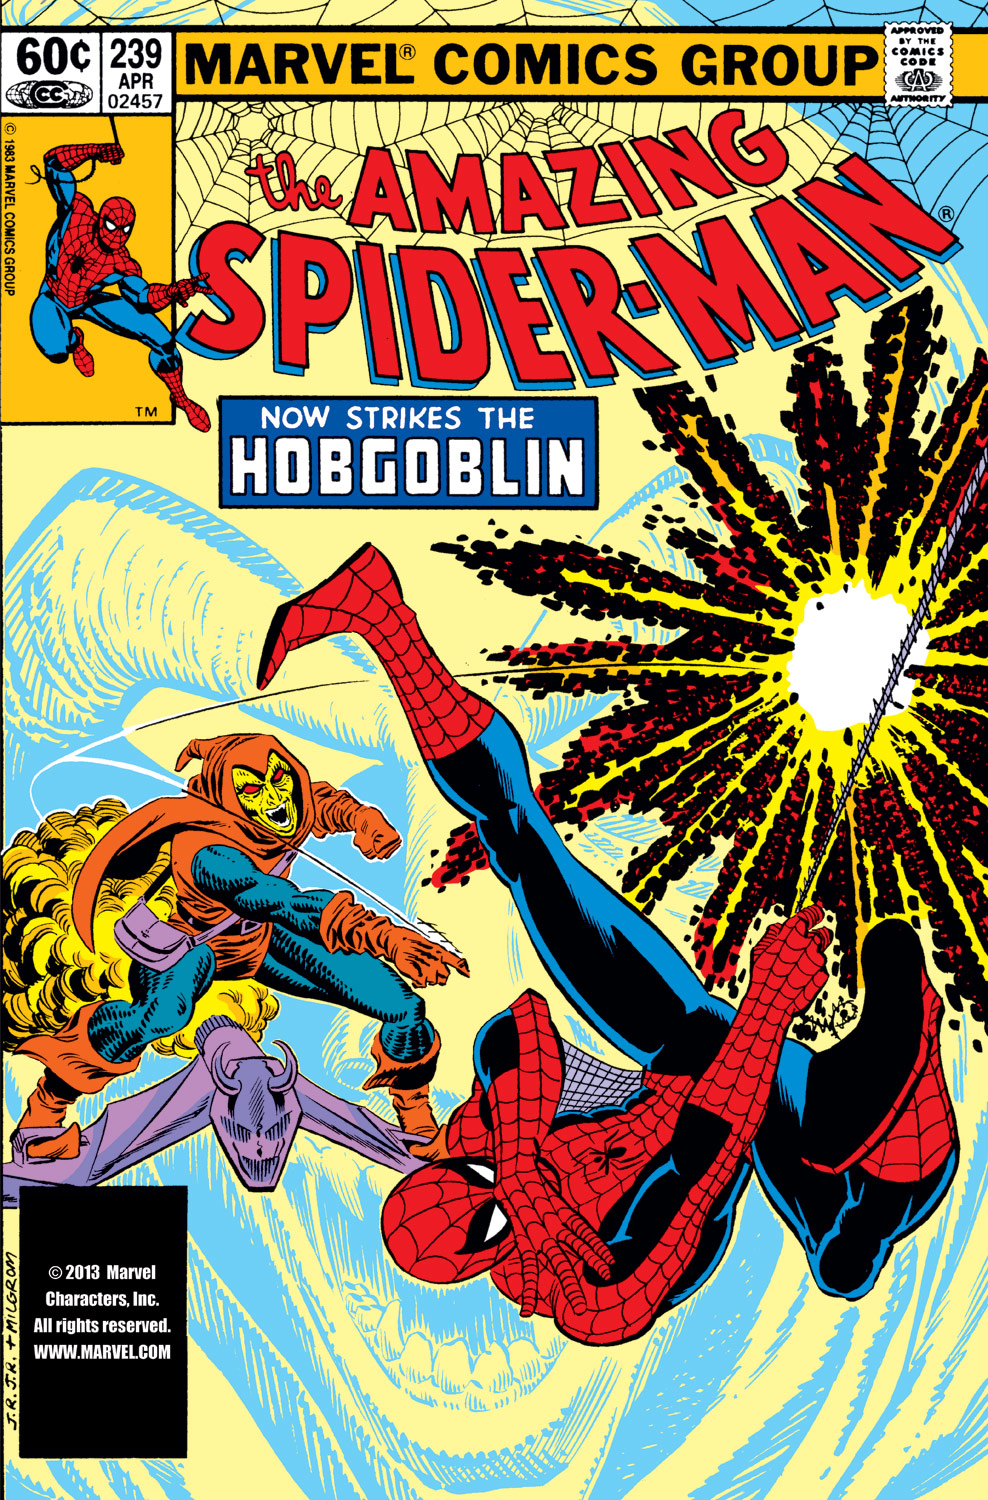 The Amazing Spider-Man (1963) #239